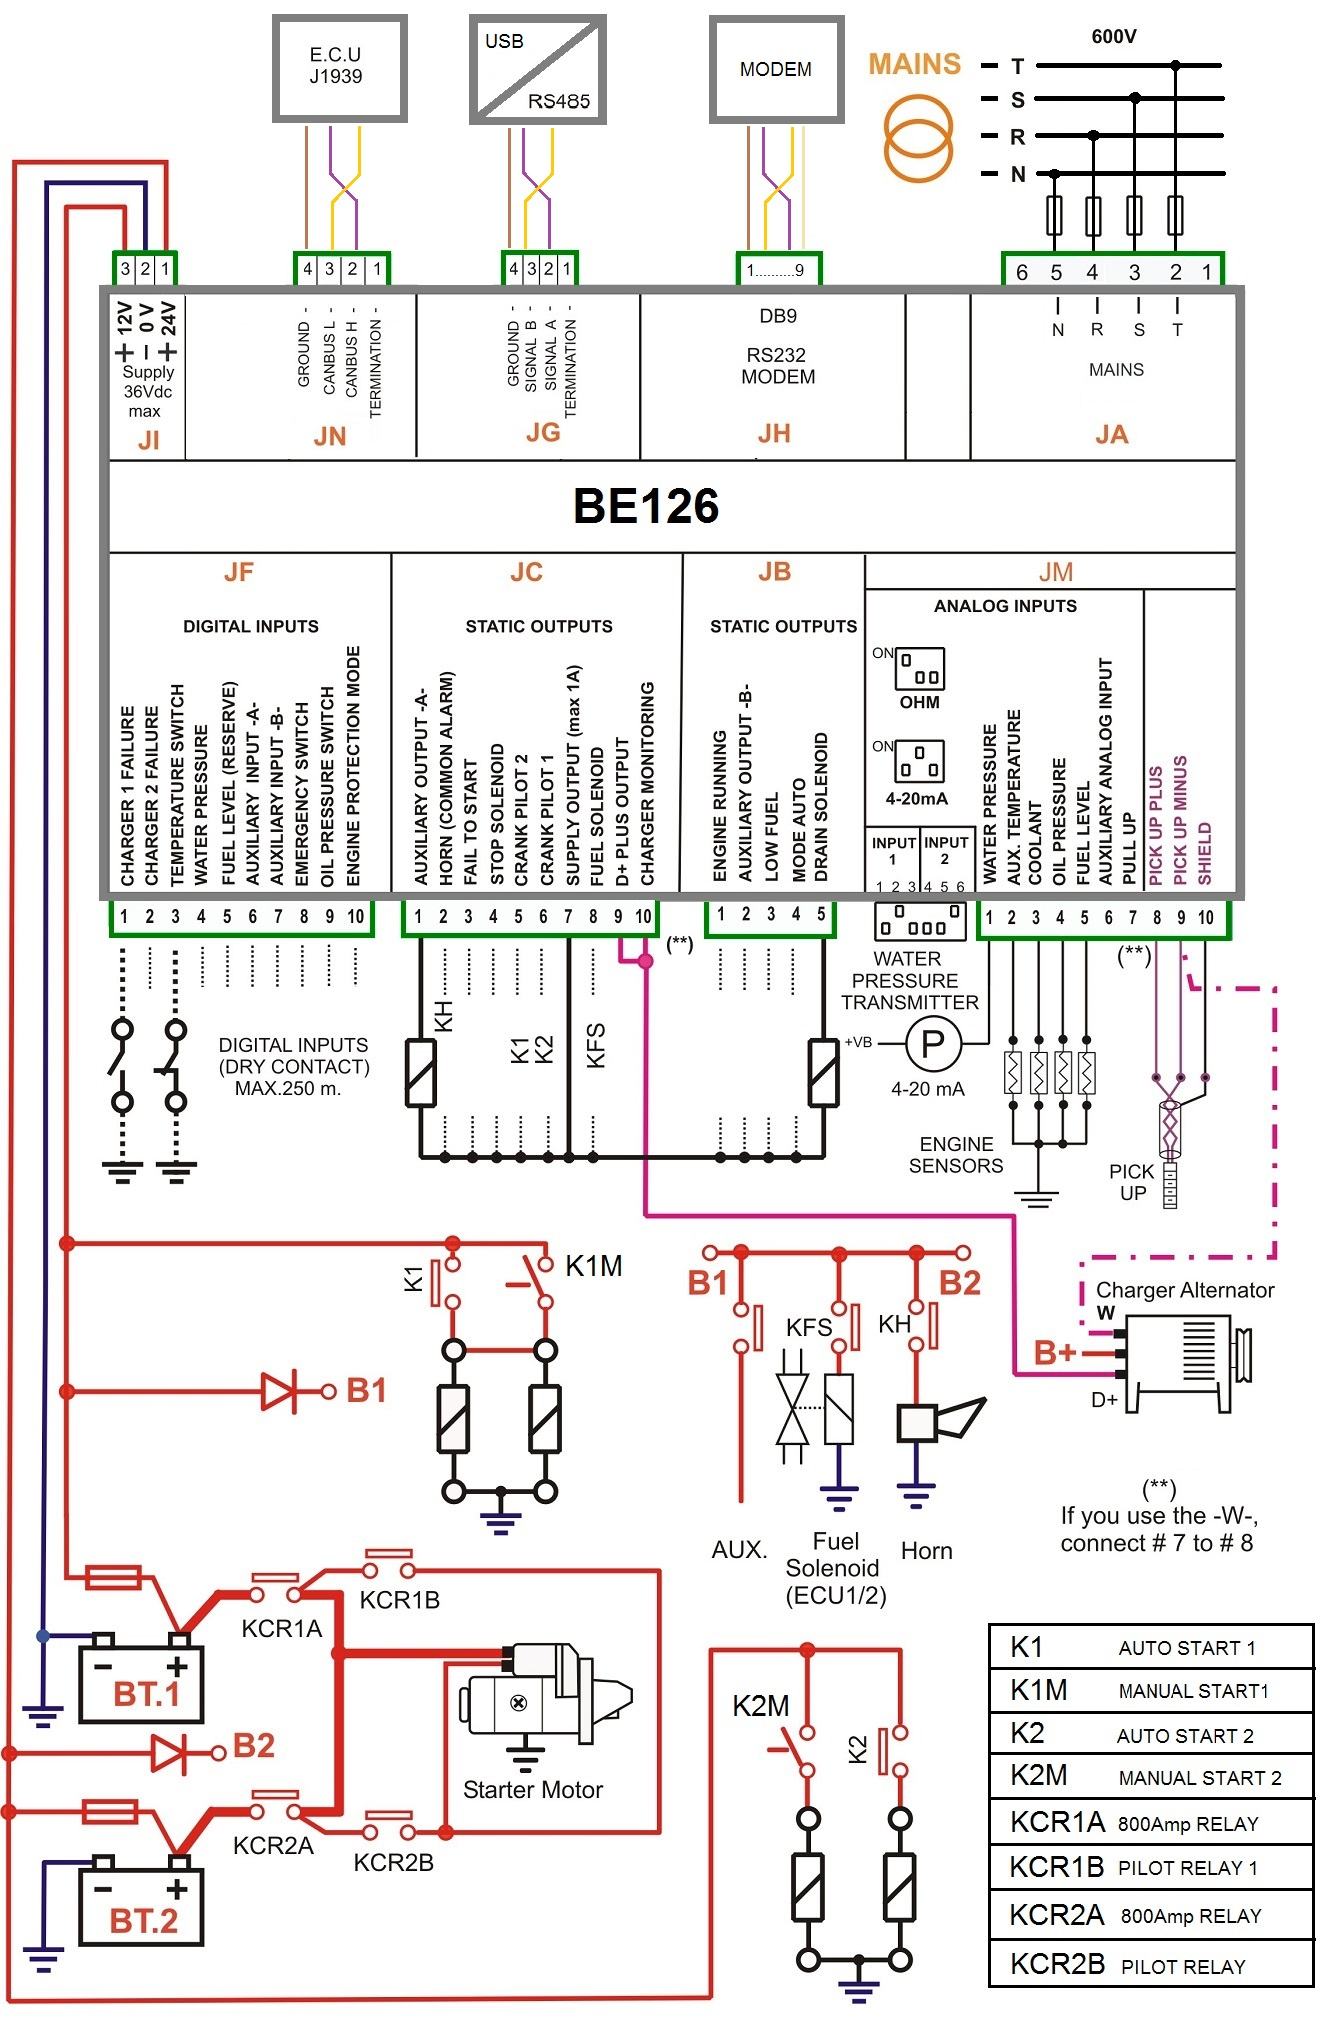 Control Wiring Schematics Diagram Schemes Star Delta Fire Pump Controller Genset Rh Bernini Design Com Of Starter 3 Phase